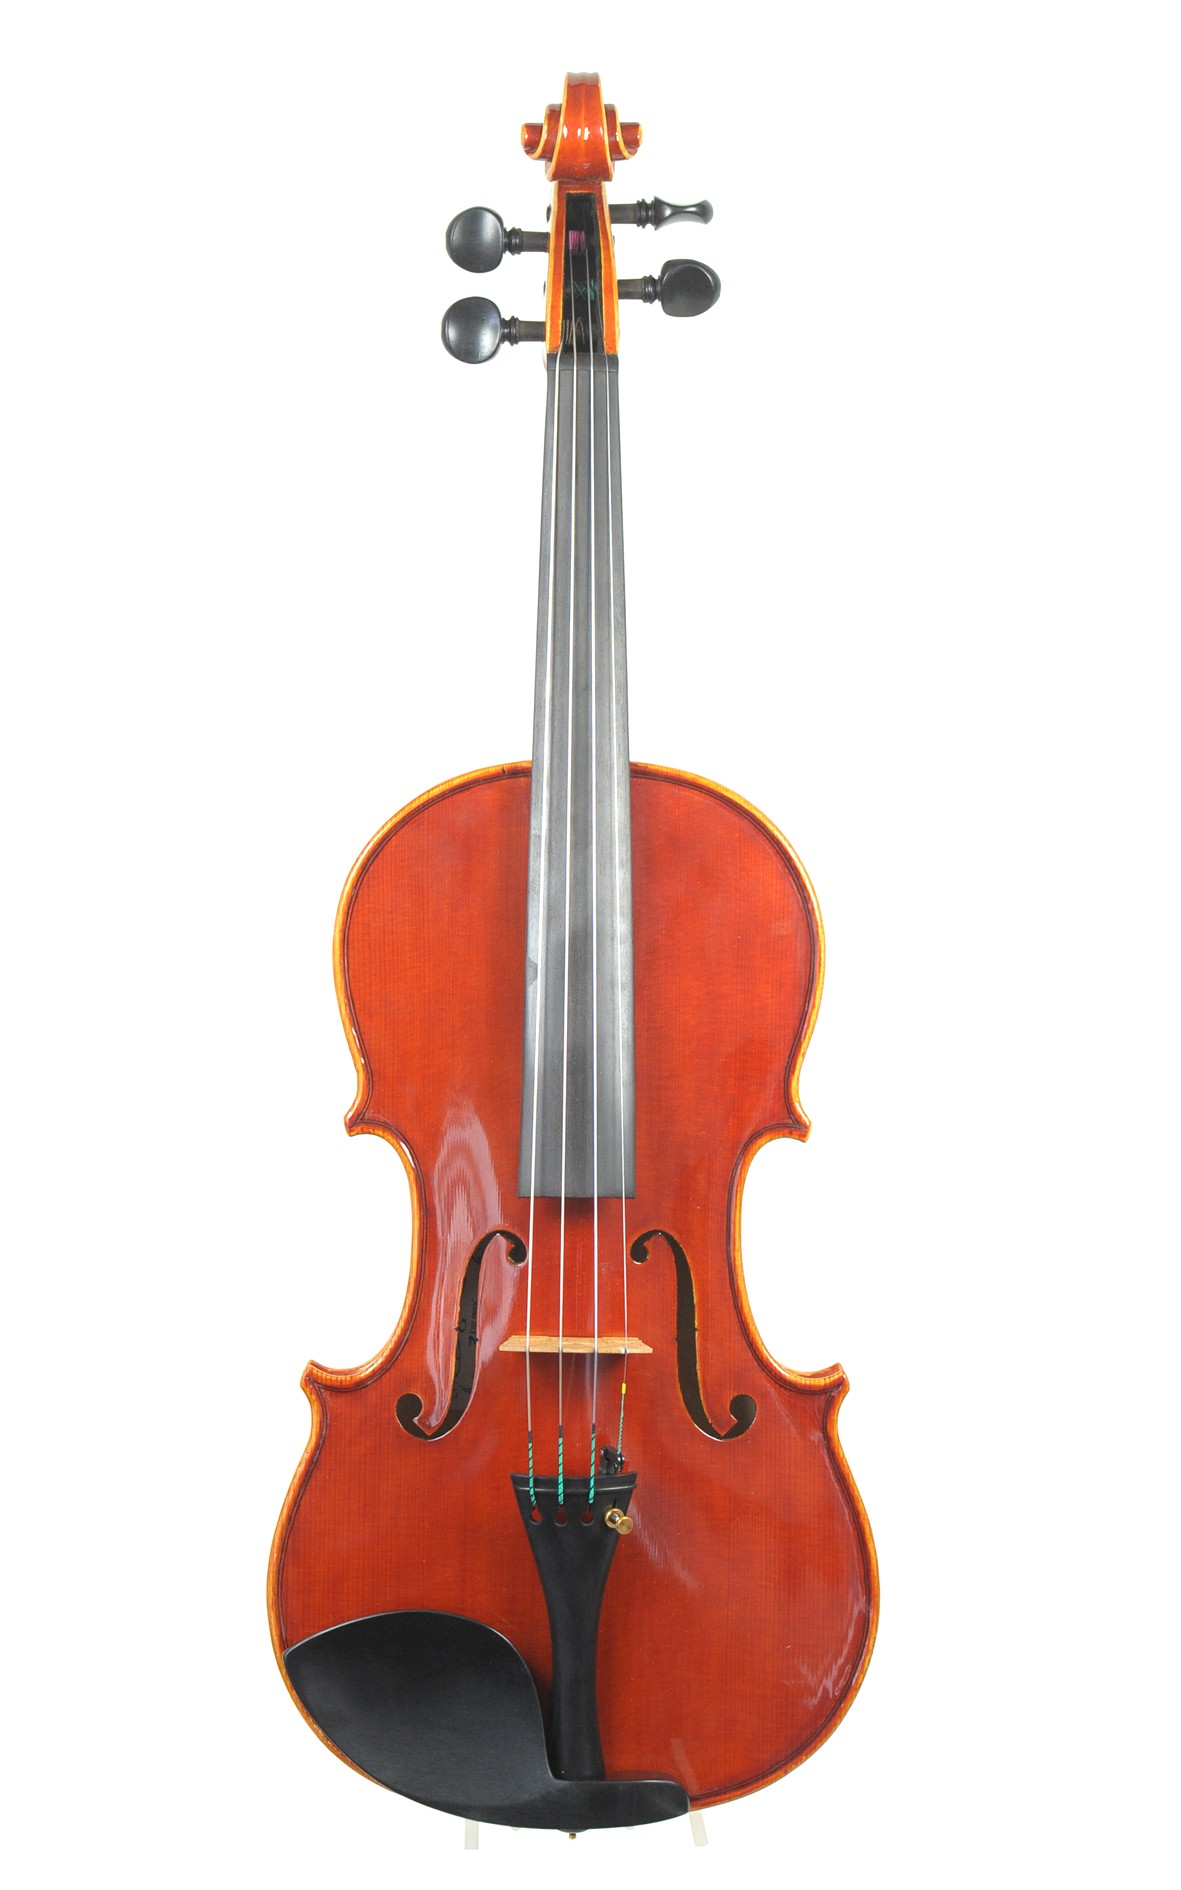 Contemporary Italian violin, Cremona, Renato Superti - top